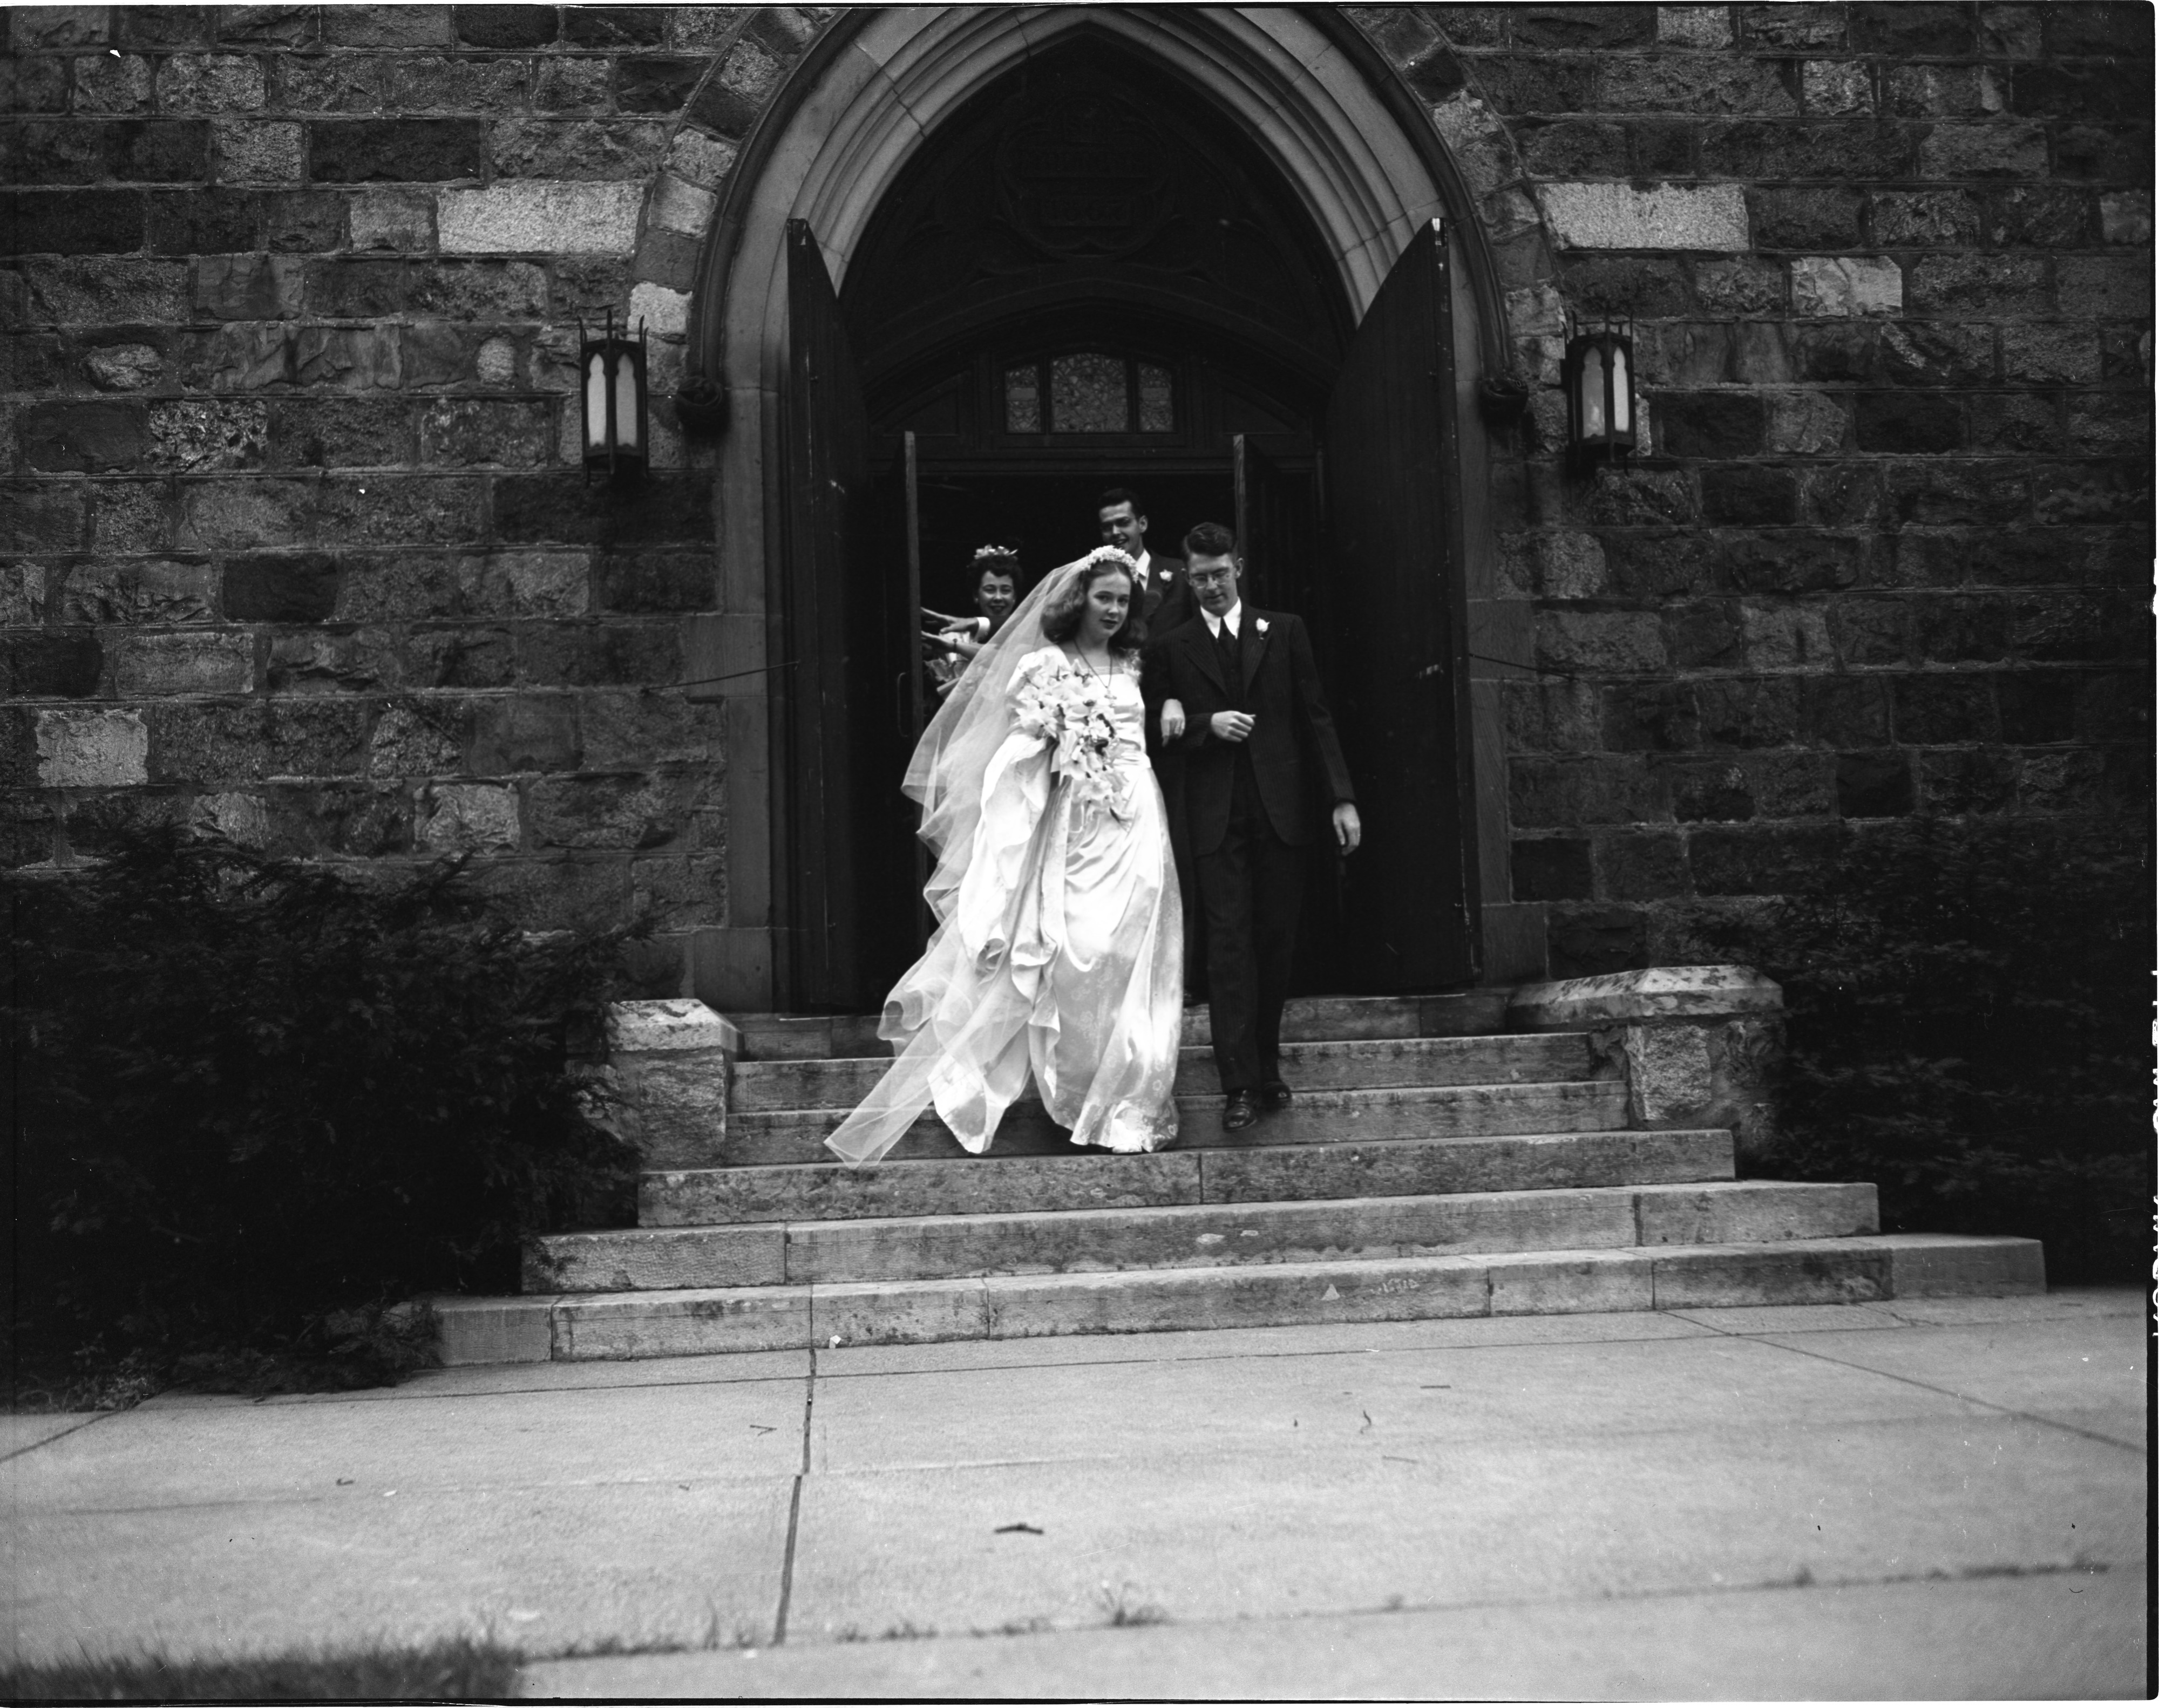 Mr. & Mrs. A. Worth Mallory Leave St. Andrew's After Their Wedding - August 30, 1946 image